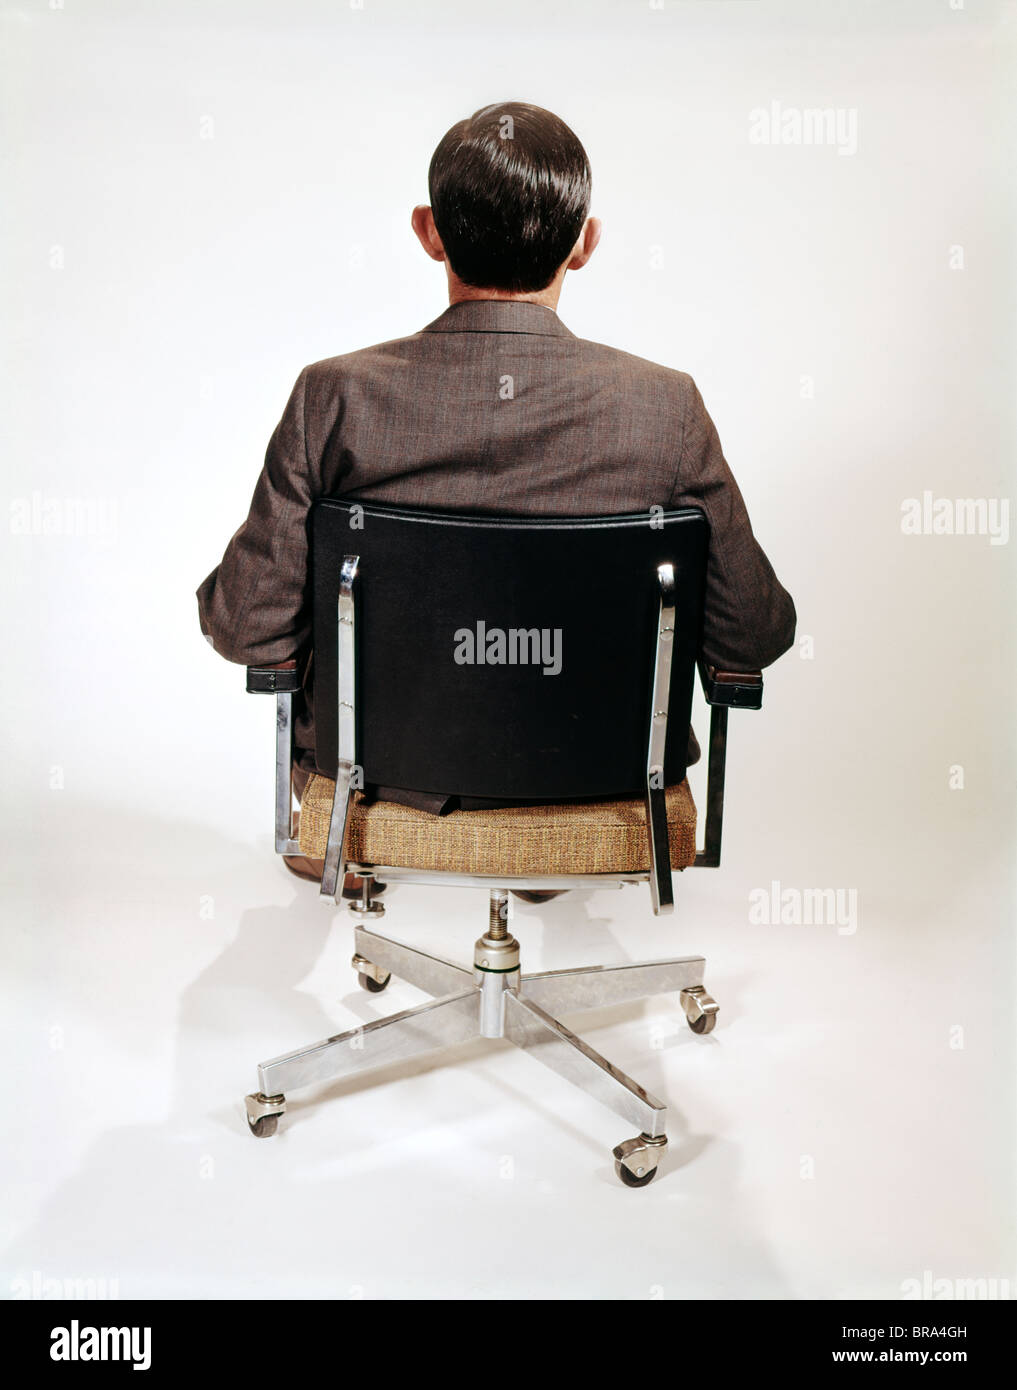 196Os BUSINESS MAN BACK VIEW SITTING IN OFFICE CHAIR RETRO